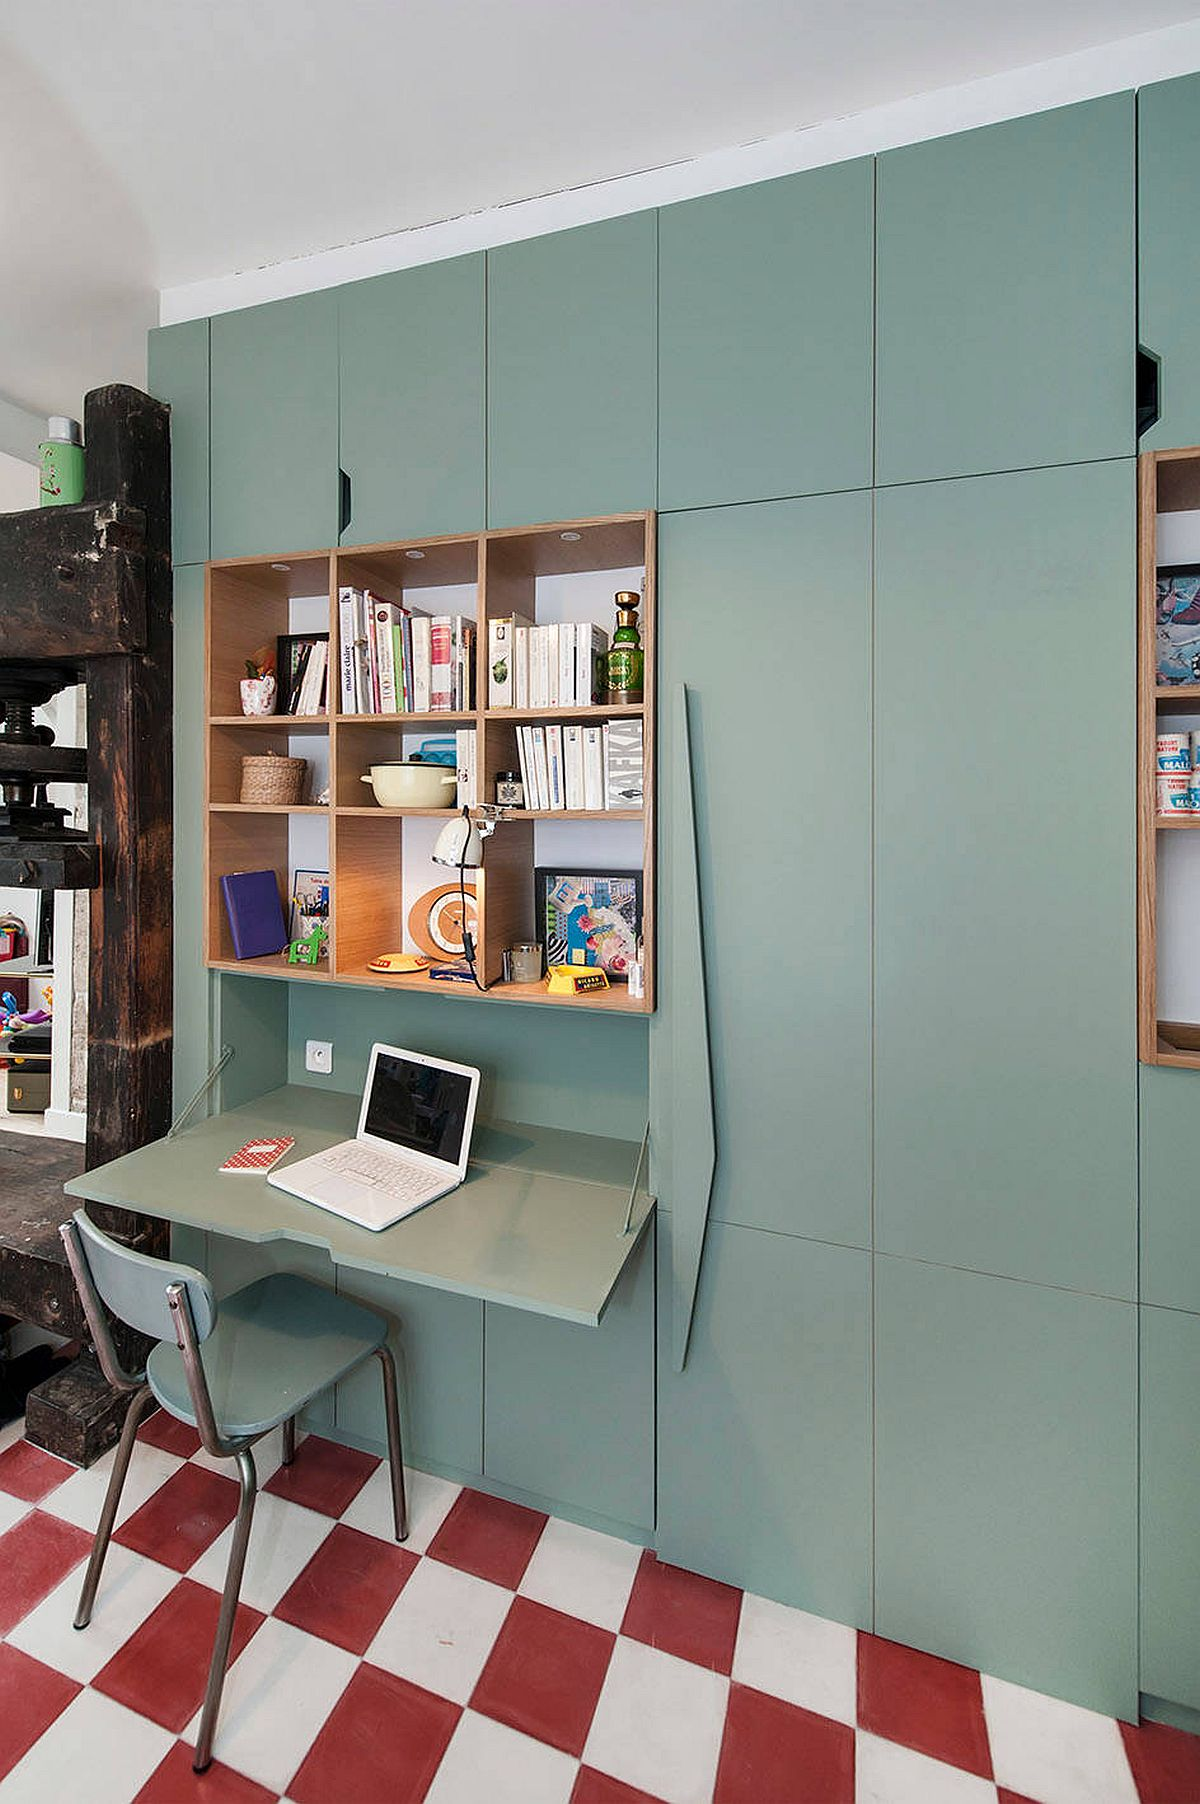 Retro-appeal-mixed-with-pastel-green-inside-the-one-of-a-kind-home-office-72688